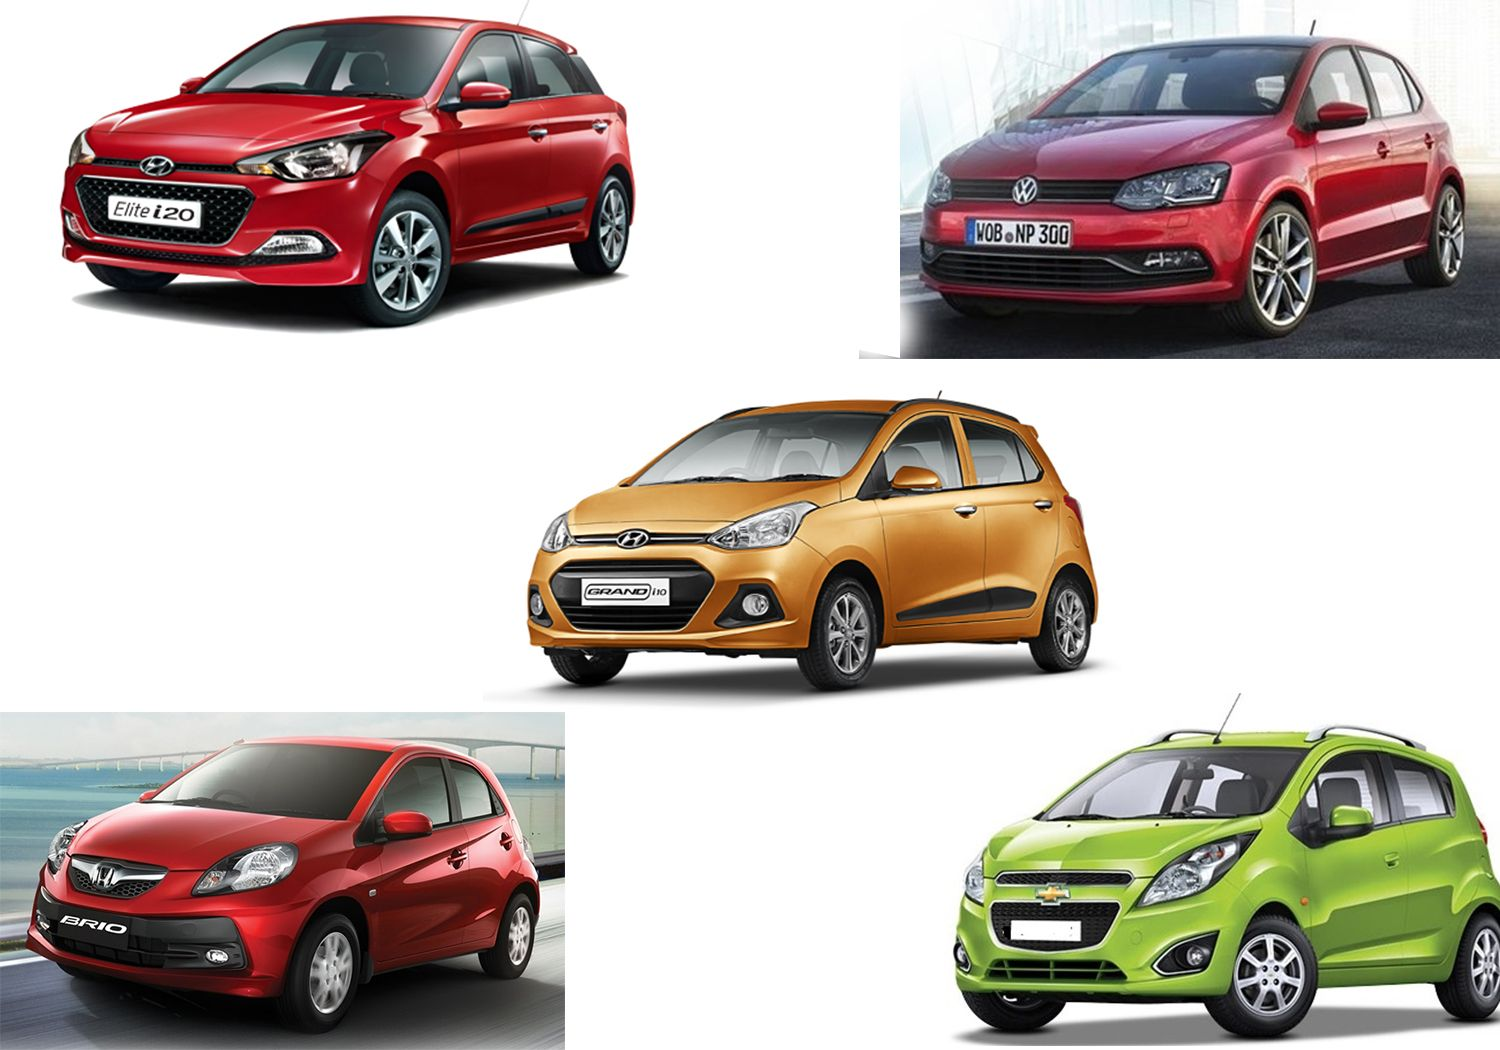 Find All New Cars Price Listings In India Visit Quikrcars To Find